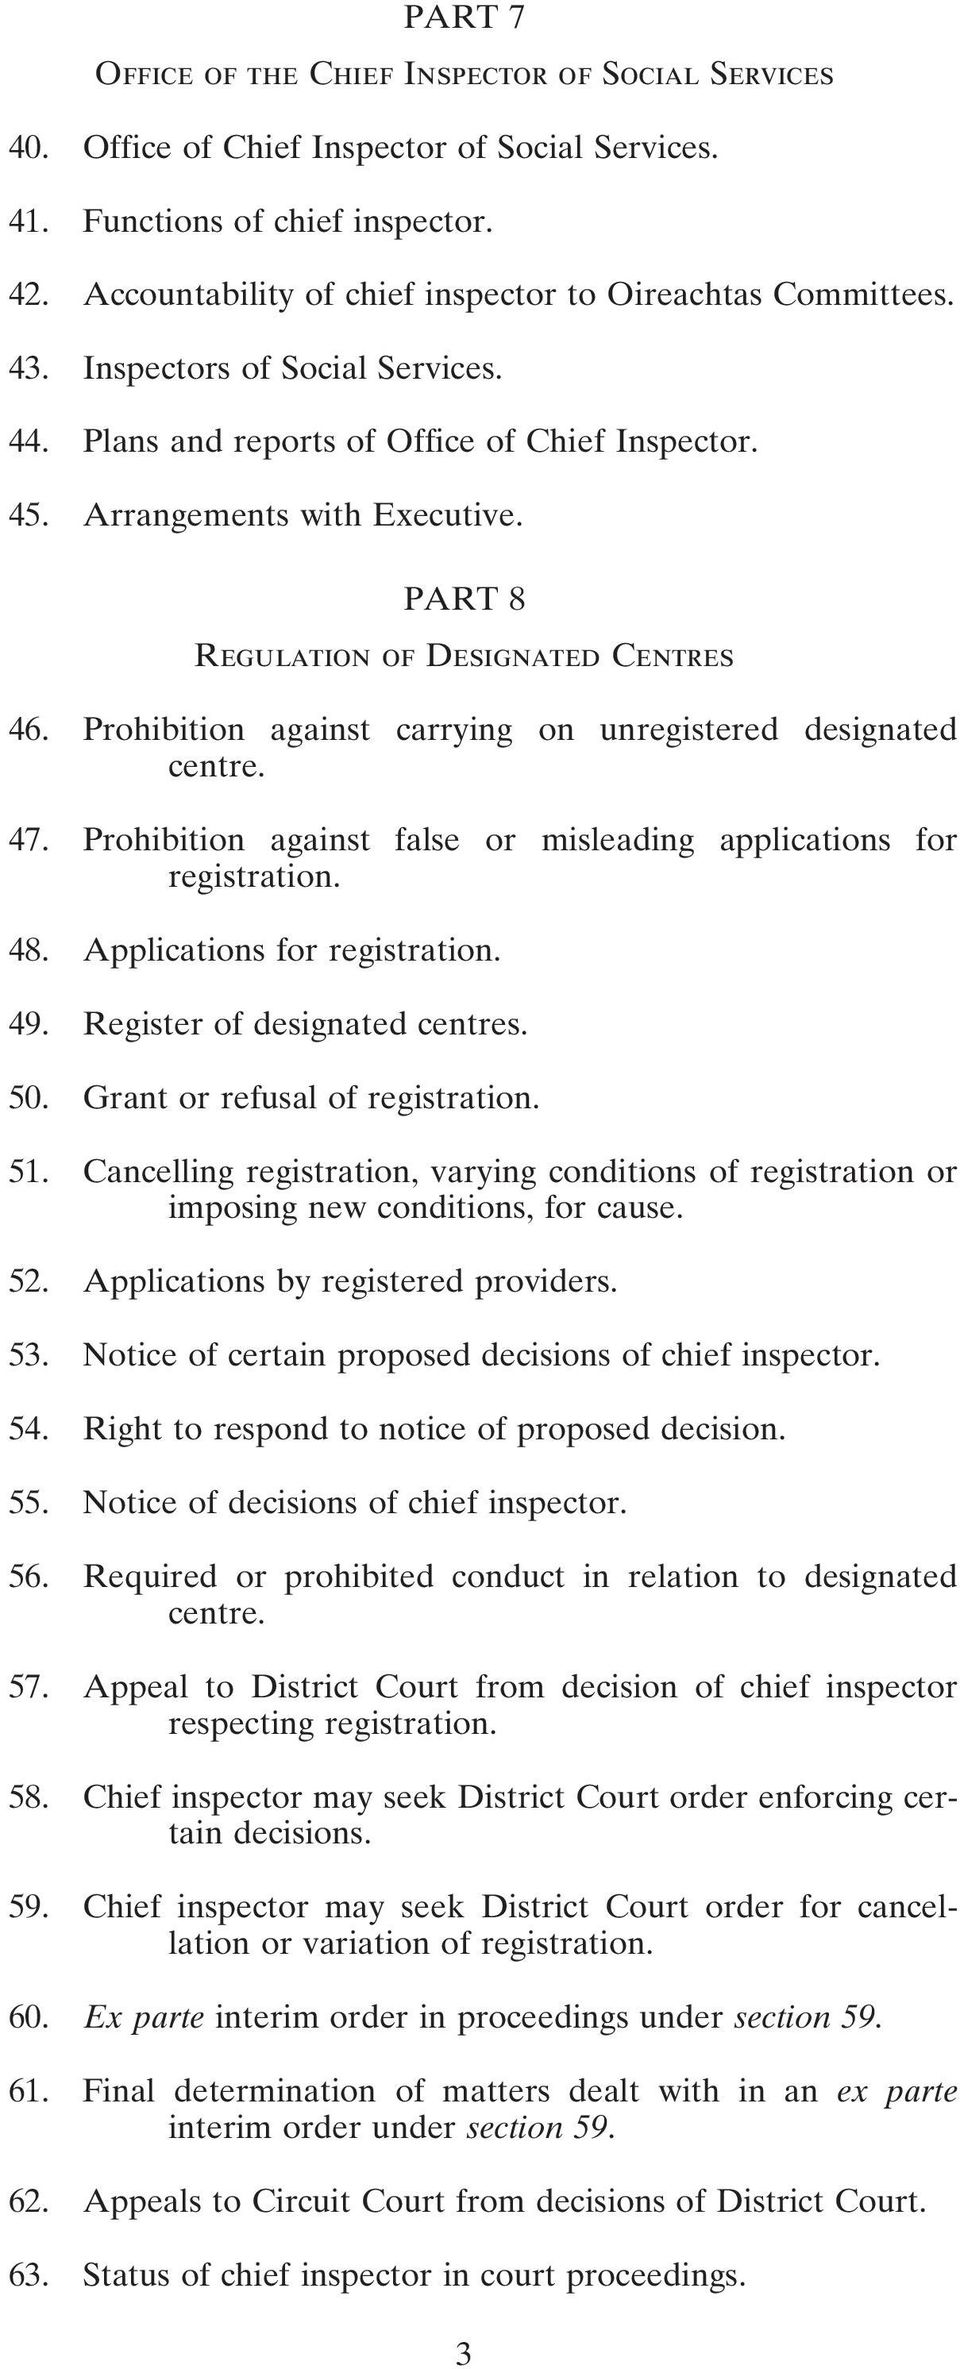 PART 8 Regulation of Designated Centres 46. Prohibition against carrying on unregistered designated centre. 47. Prohibition against false or misleading applications for registration. 48.